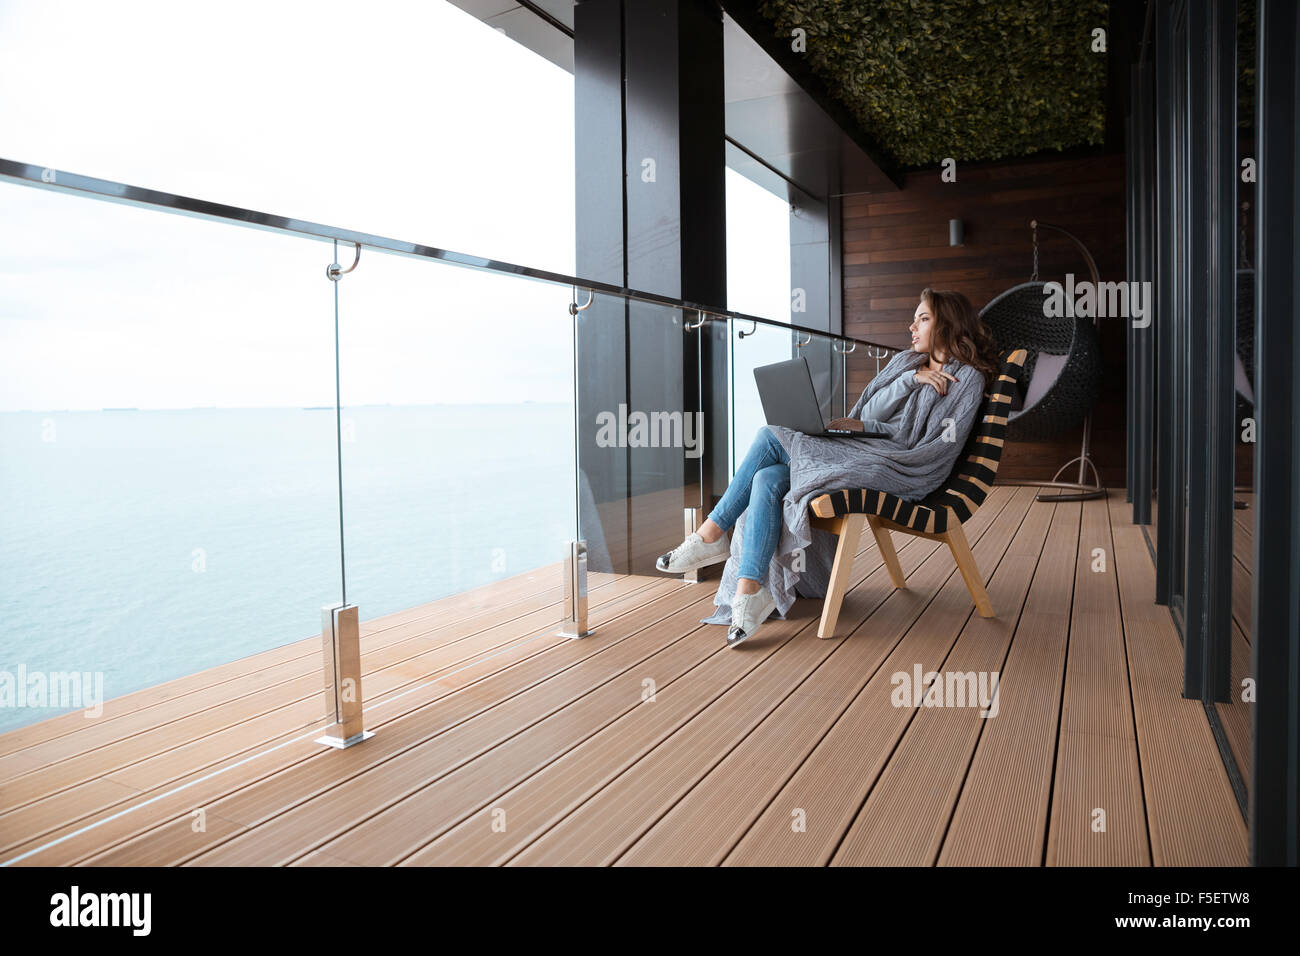 woman sitting in chair knitting stockfotos woman sitting. Black Bedroom Furniture Sets. Home Design Ideas